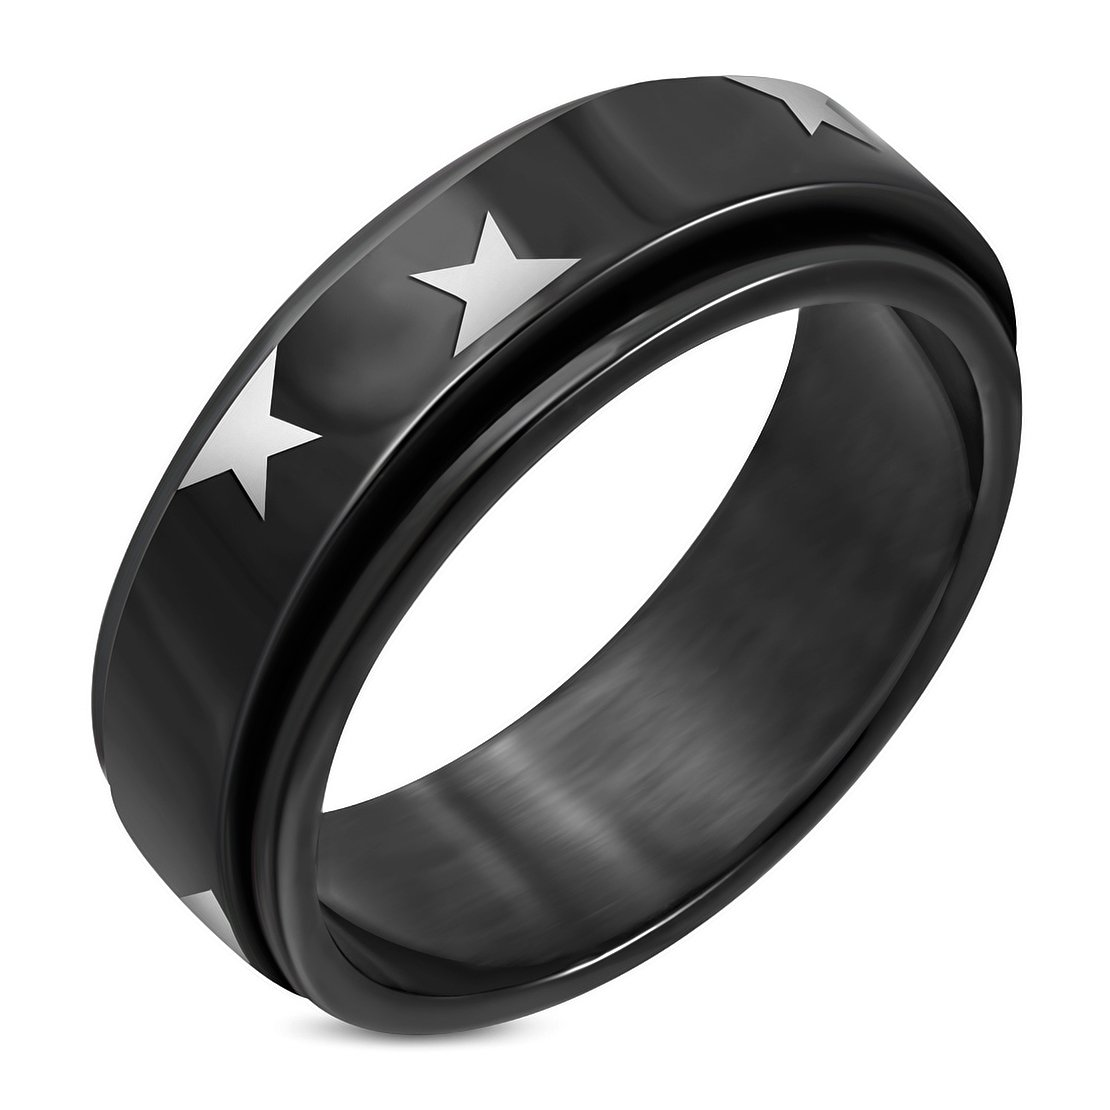 Stainless Steel Black 2 Color Star Spinning Flat Band Ring